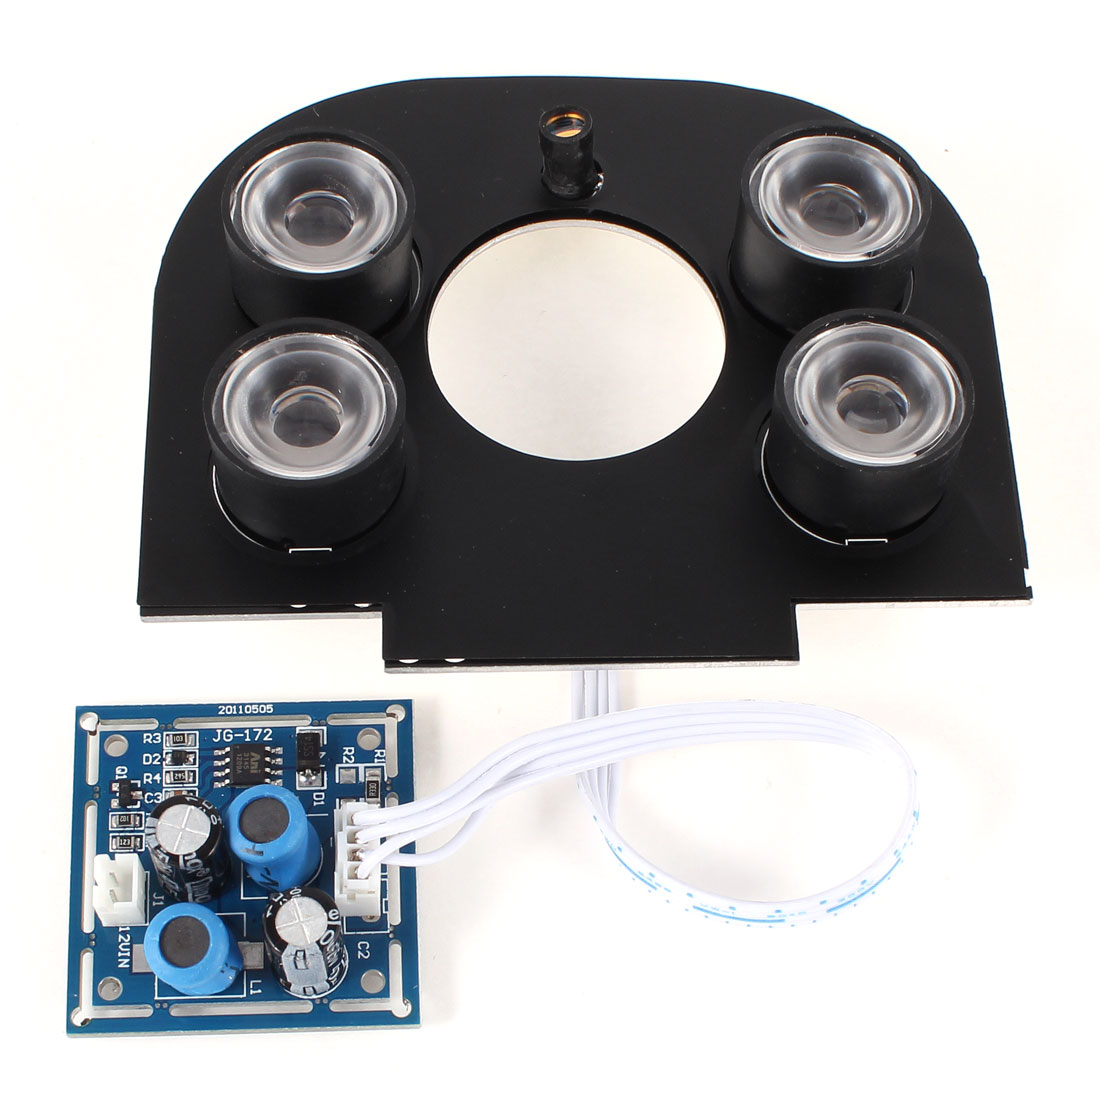 CCTV Security Camera 60 Degree 6mm Lens Red 4-LED IR Infrared Board Plate